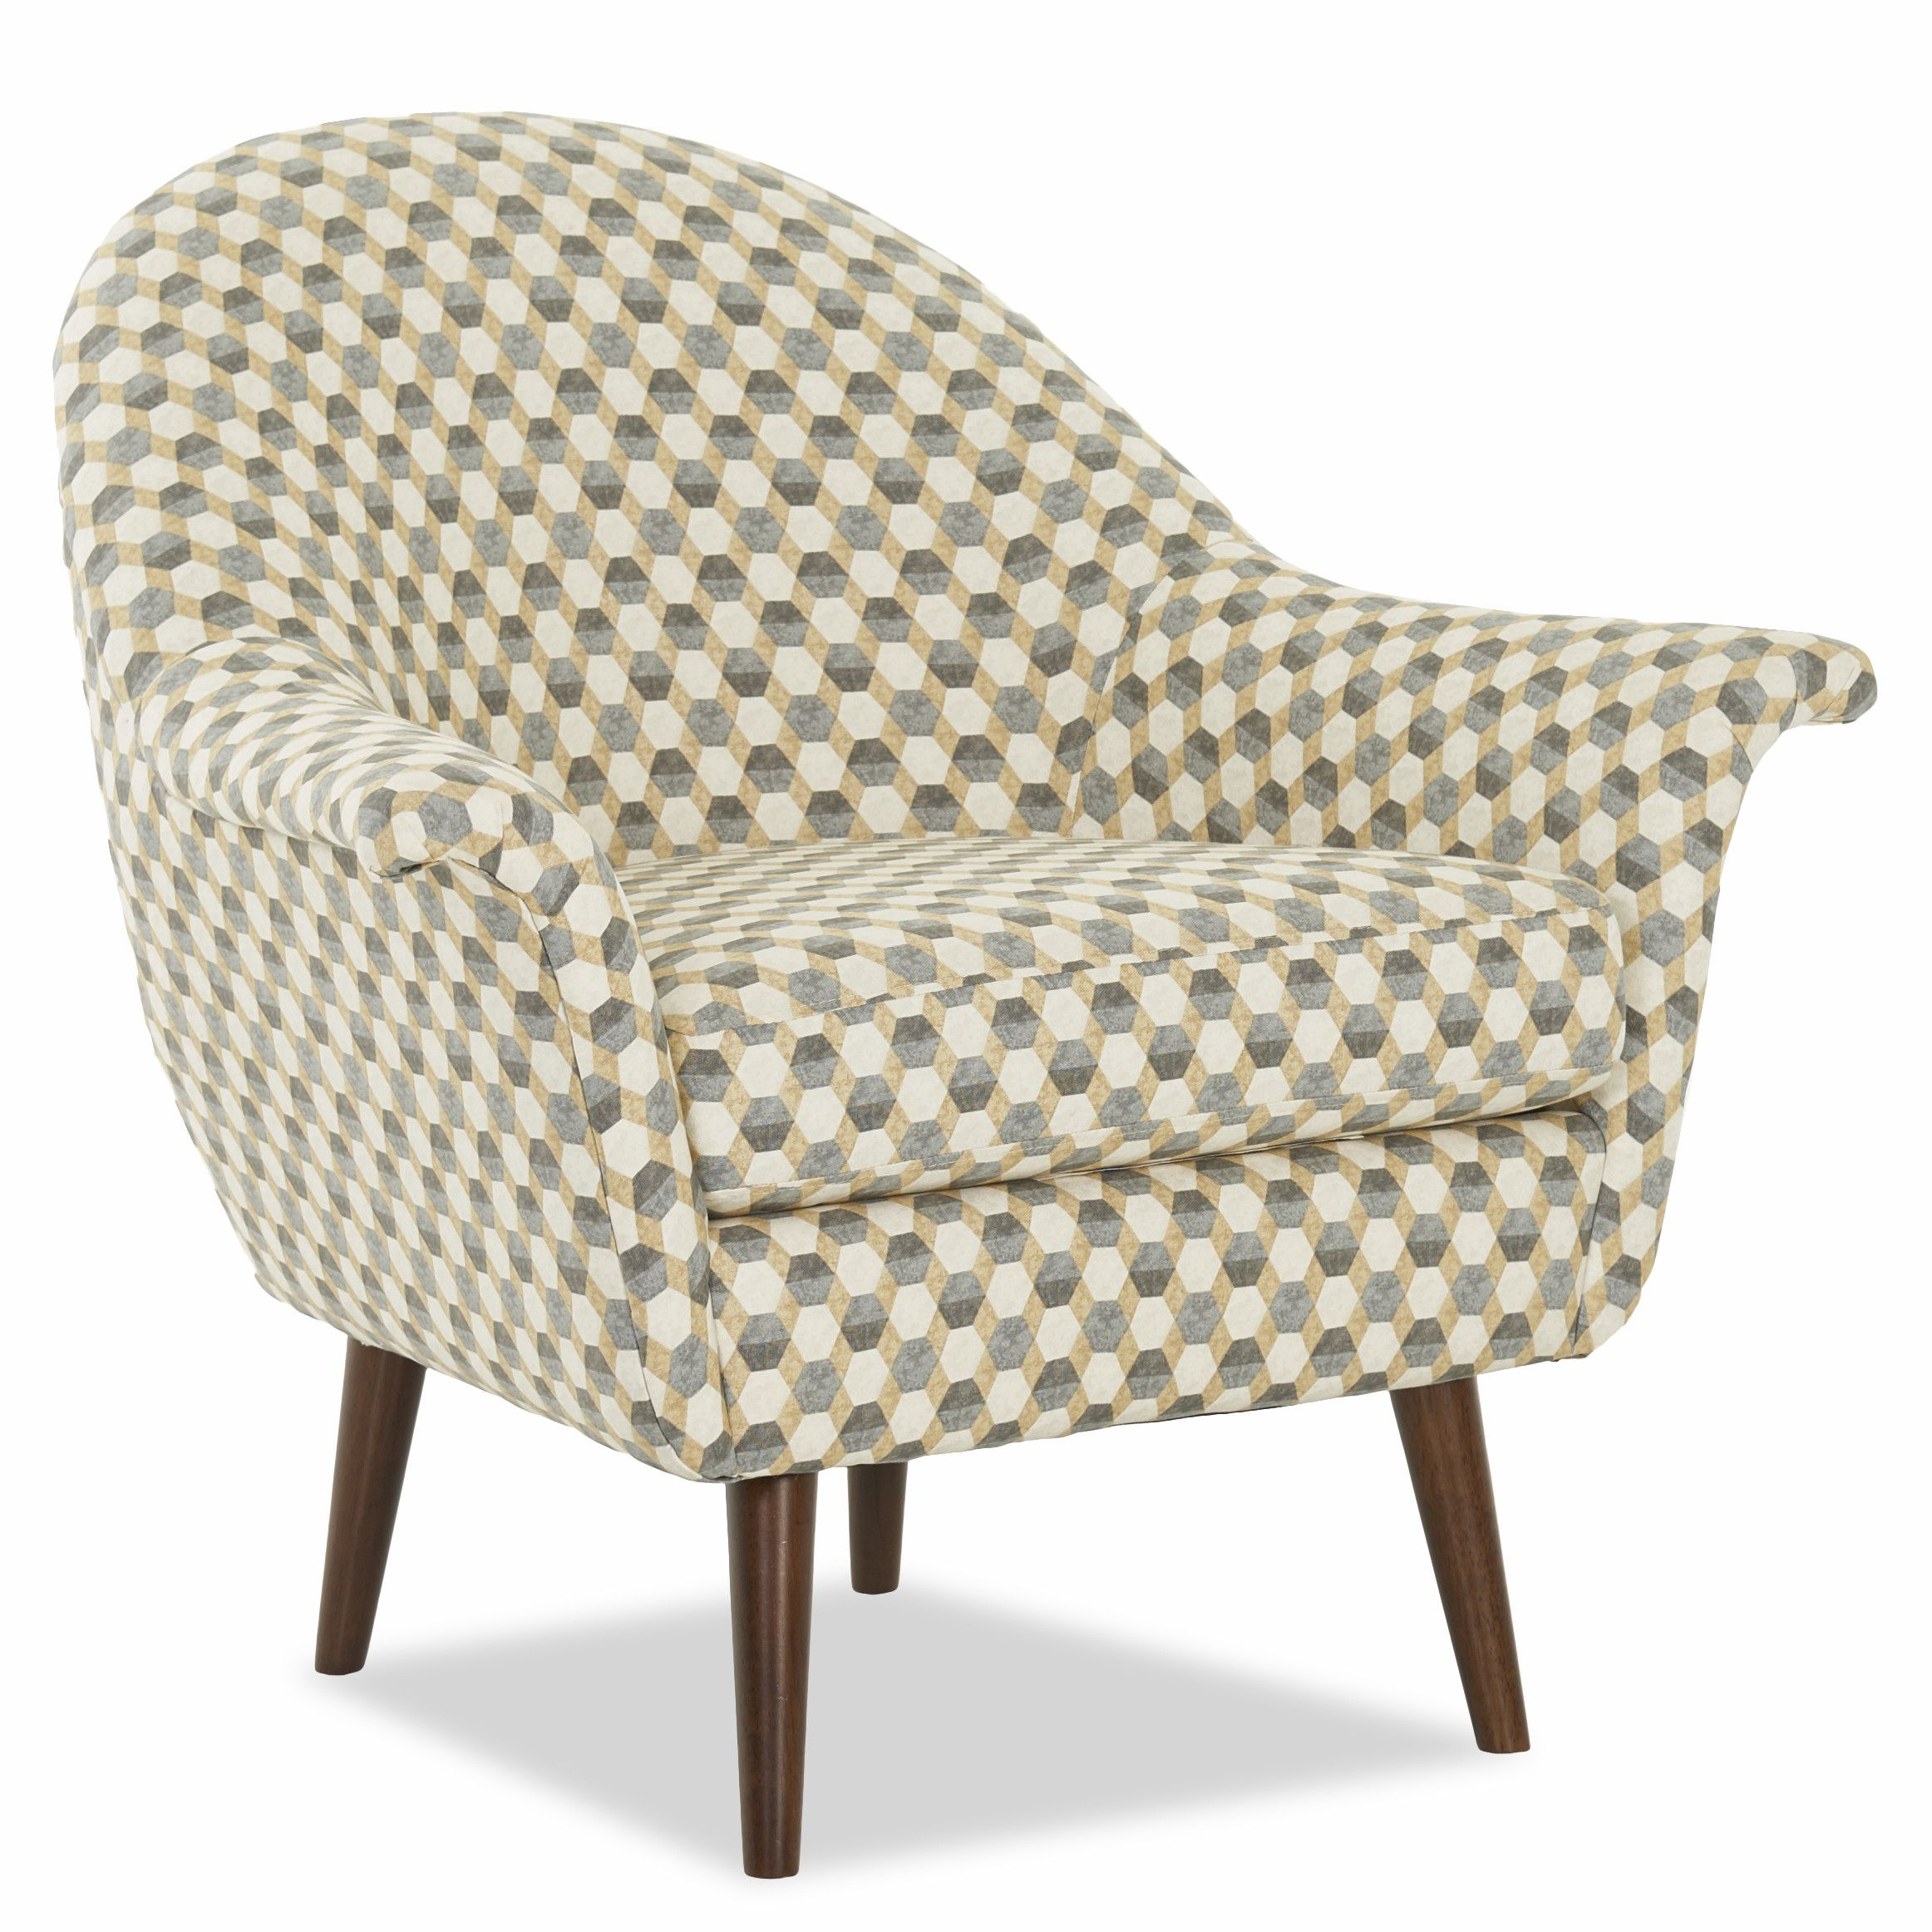 20 Best Accent Chairs for Living Room Chic Upholstered Accent Chairs